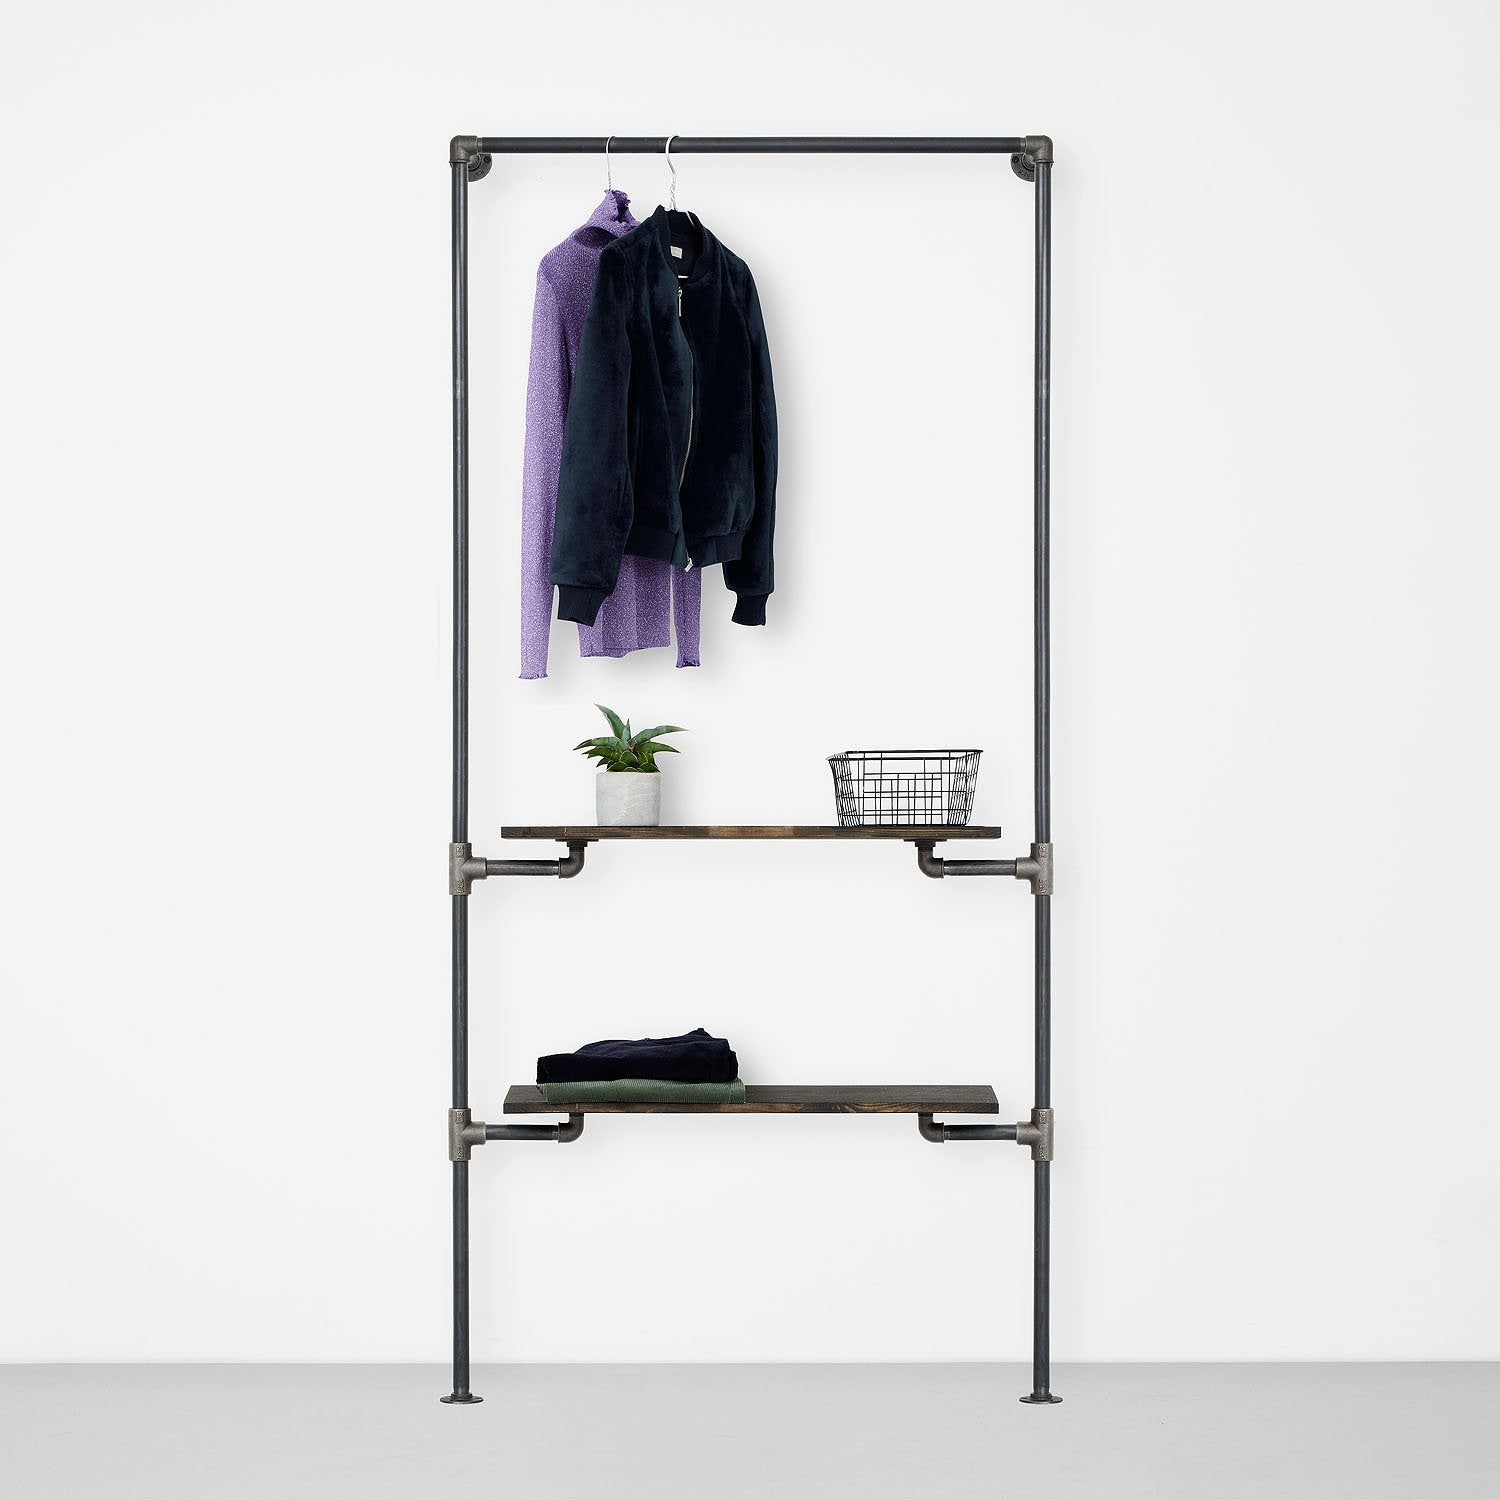 The Walk-In 1 row wardrobe system - 1 rail & 2 shelves